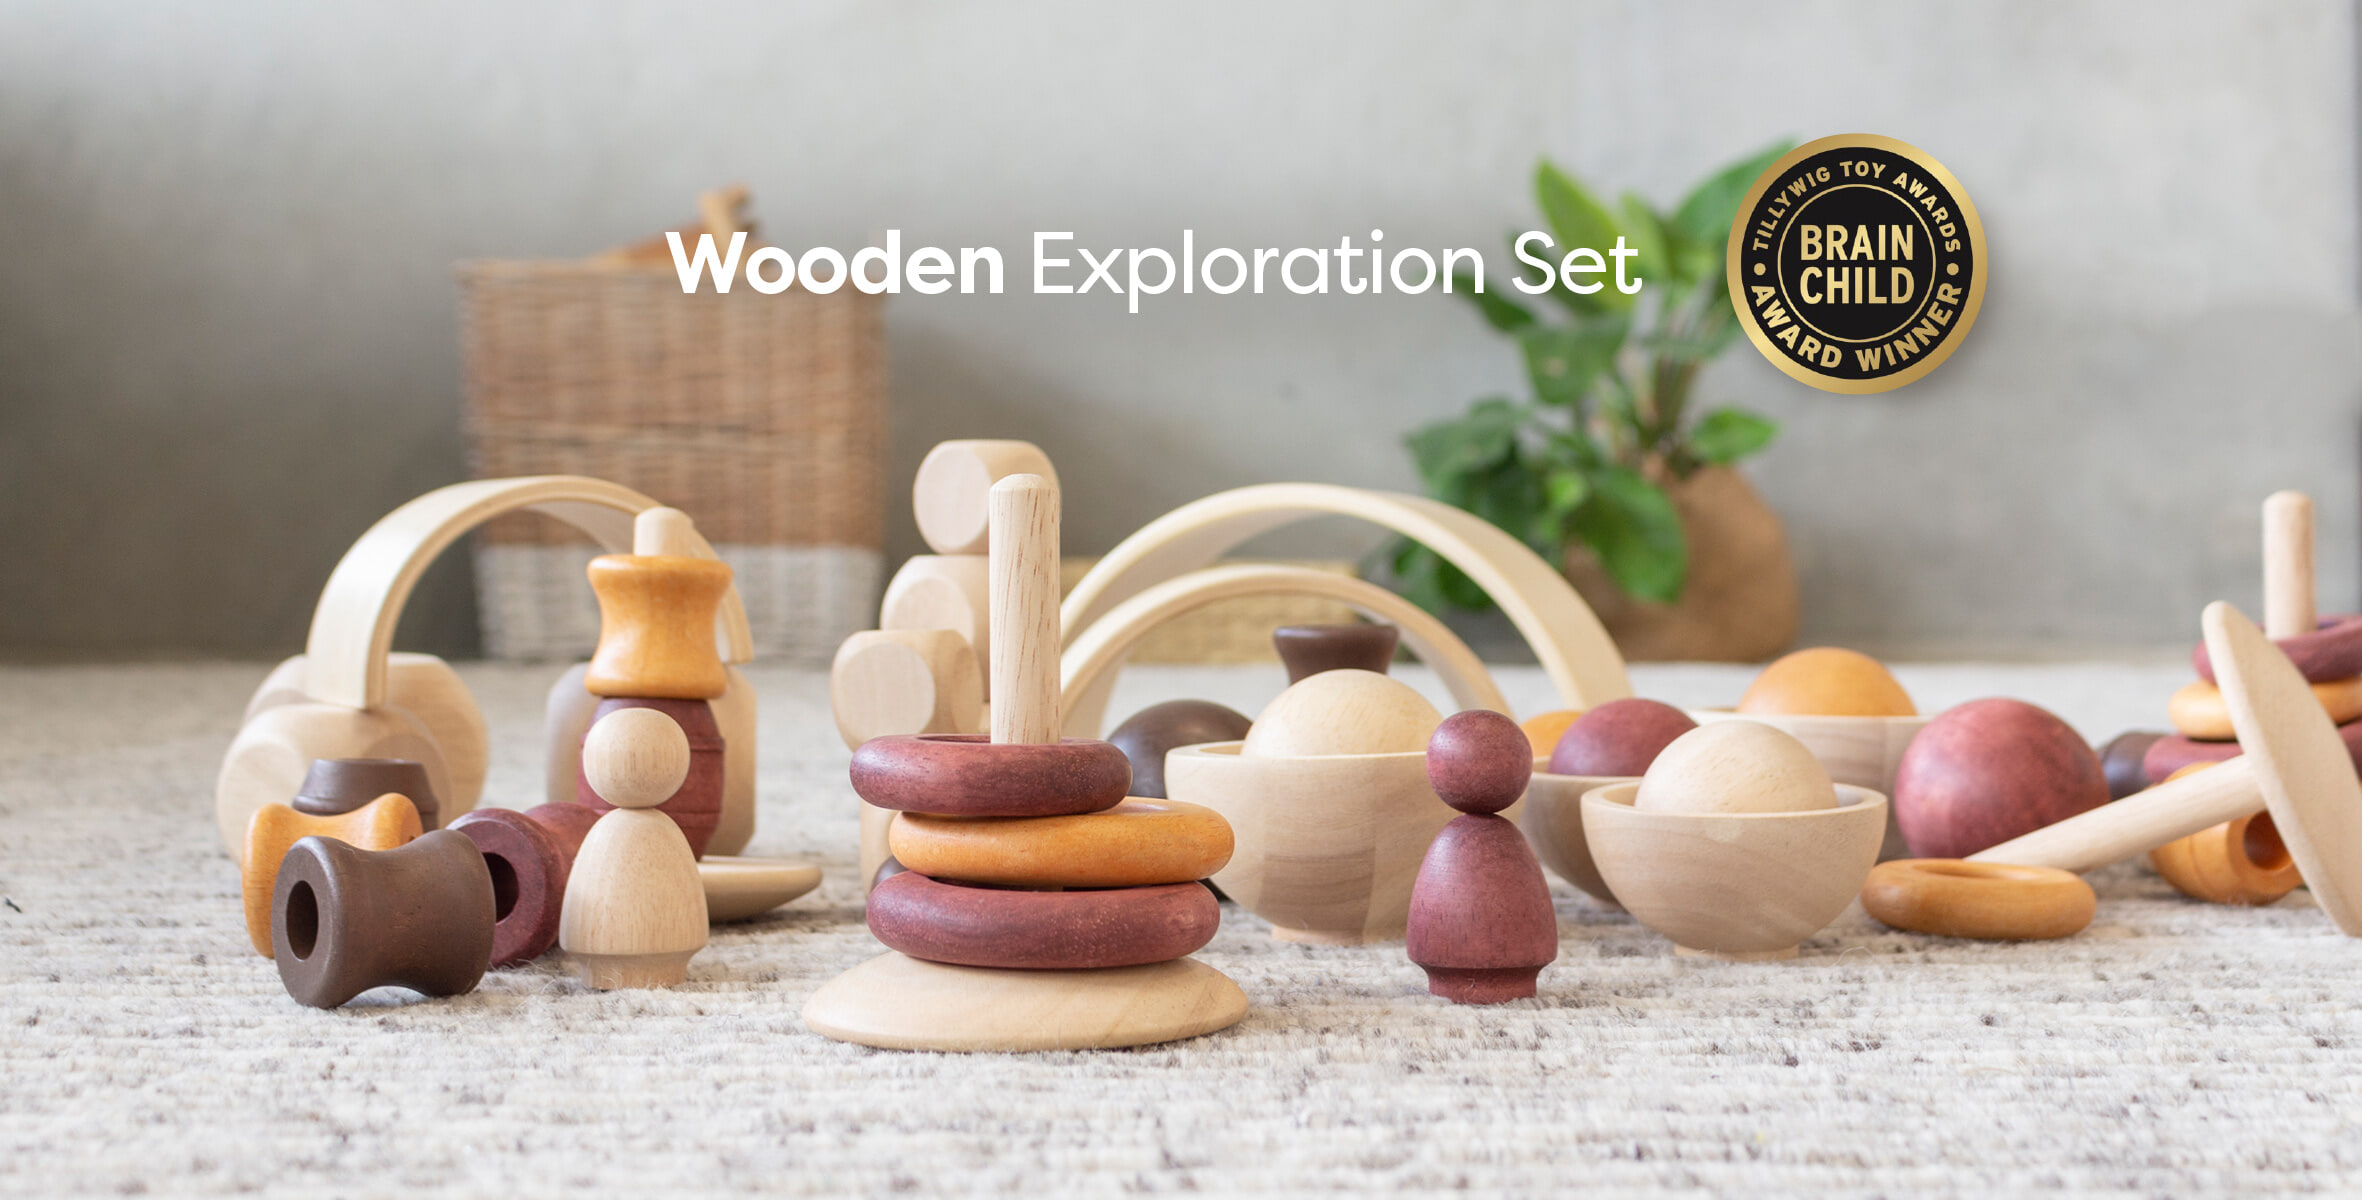 Wooden Exploration Set